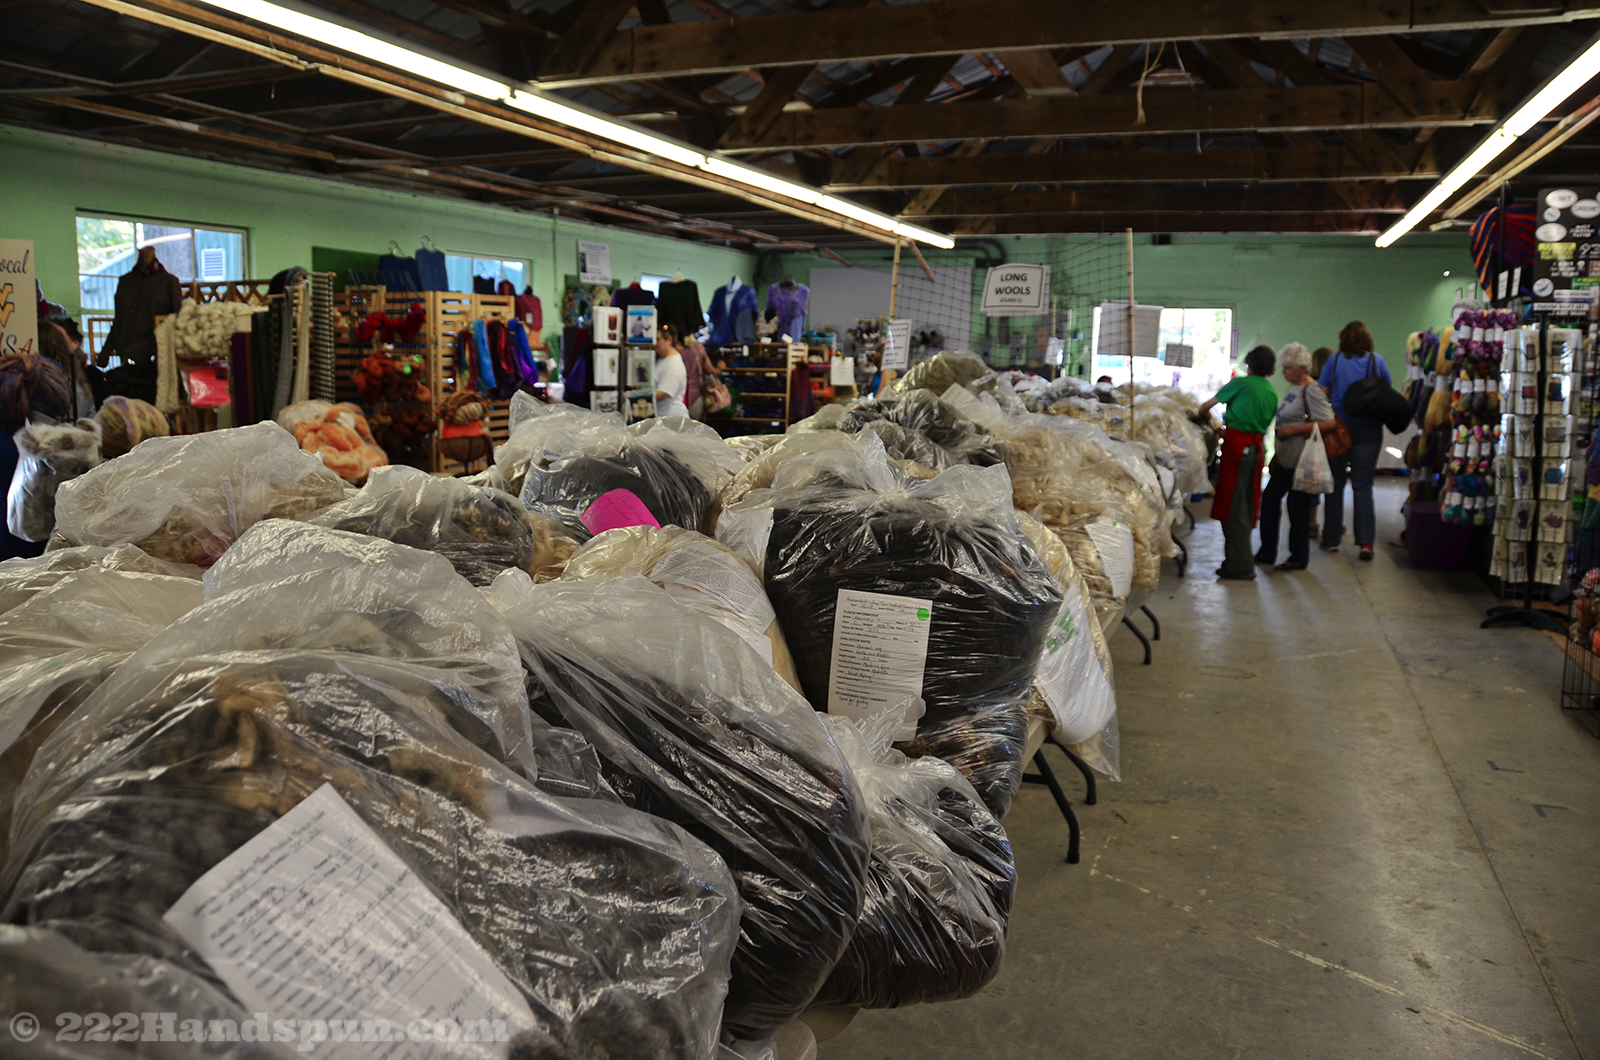 The Fleece Sale